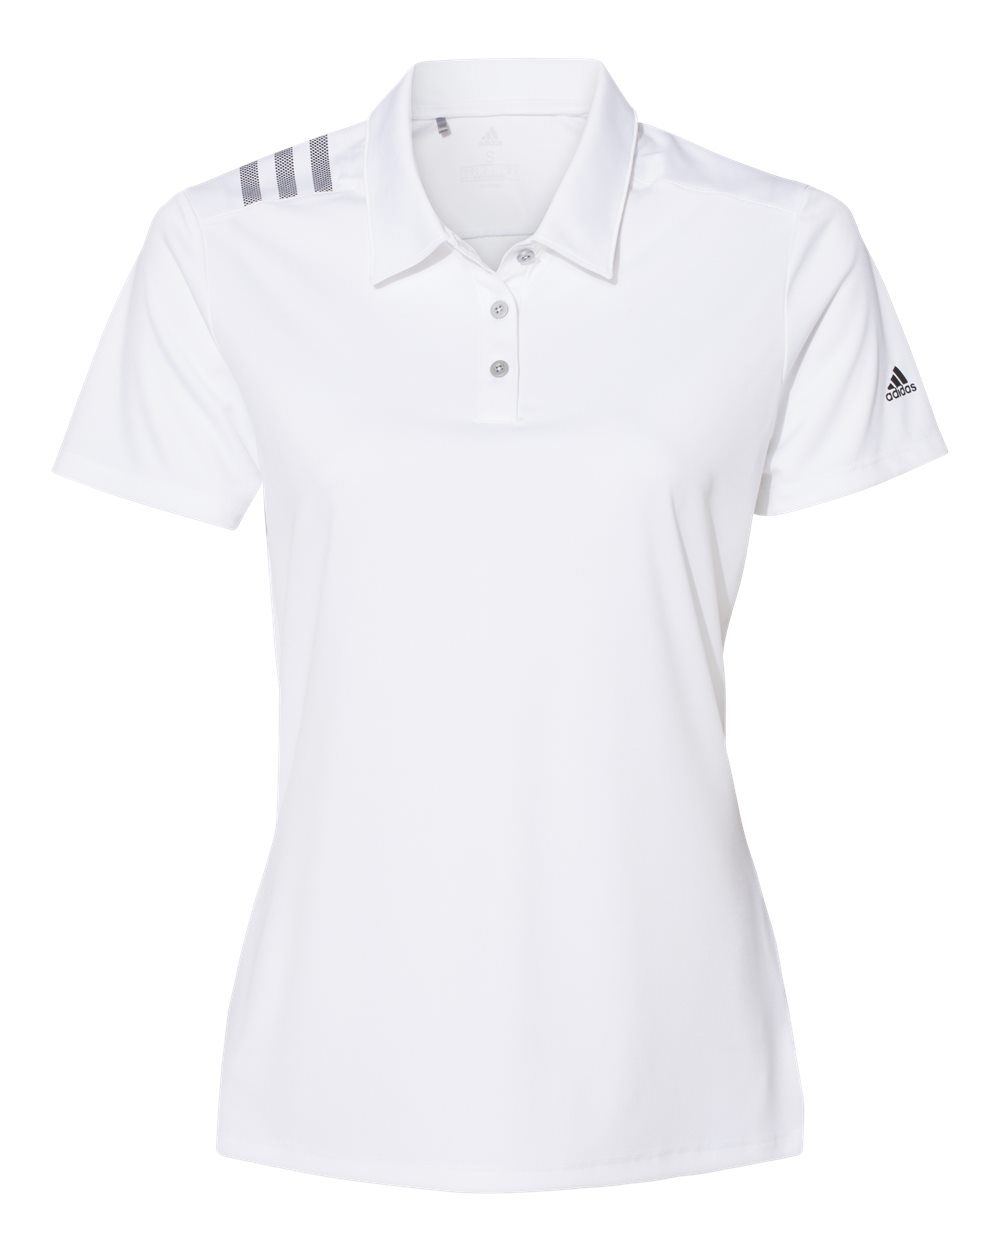 Adidas A325 - Women's 3-Stripes Shoulder  Sport Shirt